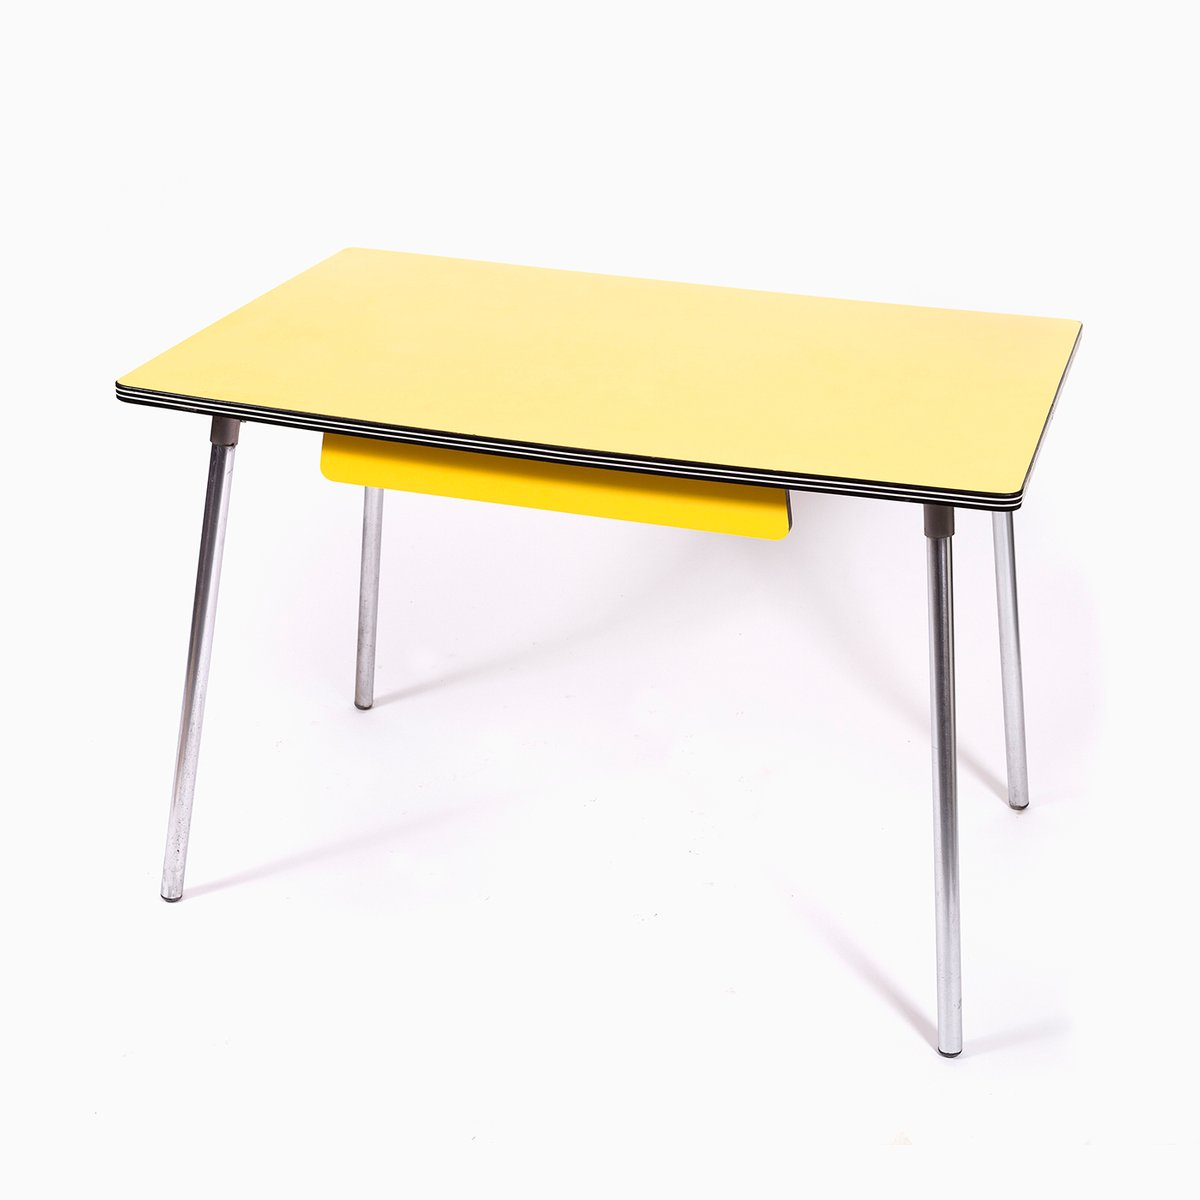 table de salle manger vintage en formica jaune avec pieds en chrome en vente sur pamono. Black Bedroom Furniture Sets. Home Design Ideas